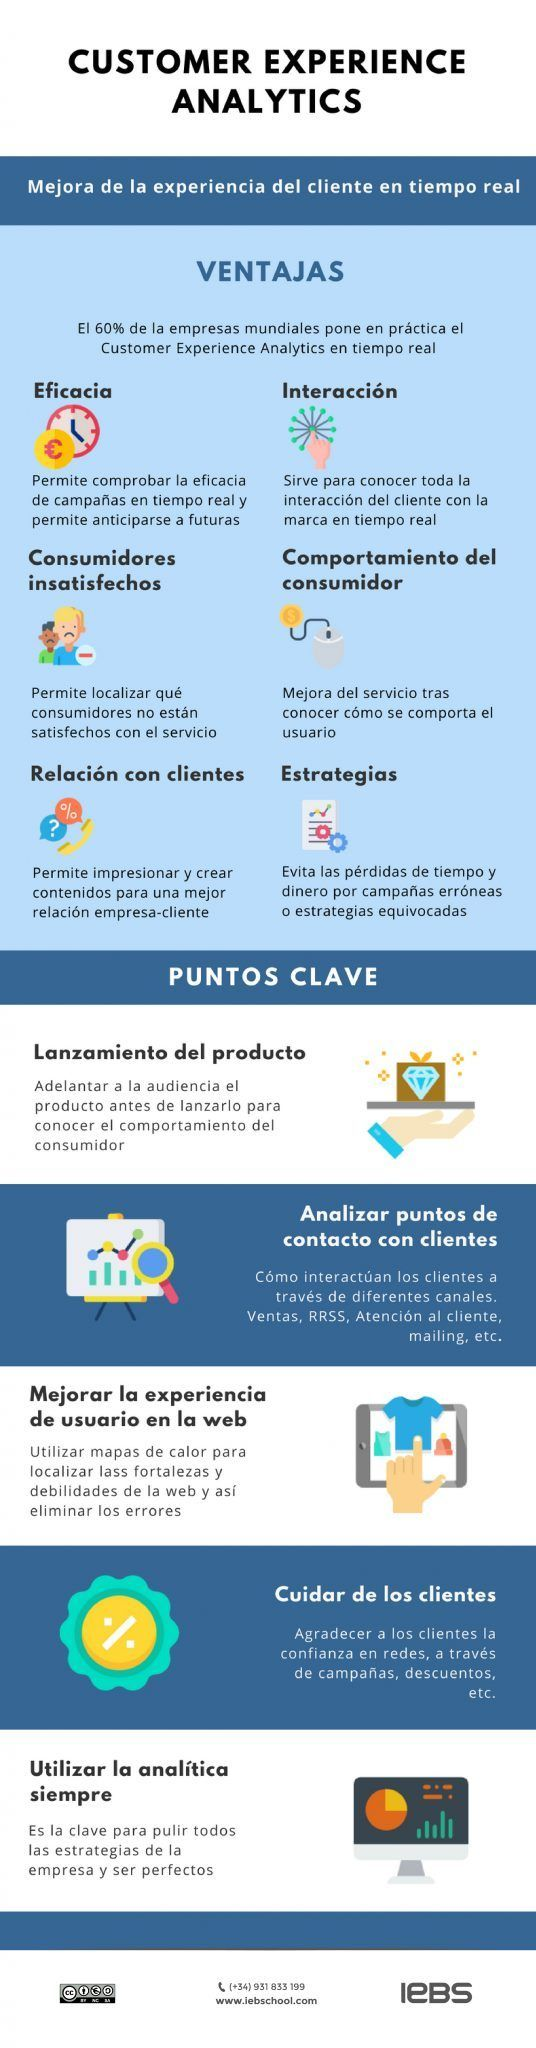 infografía customer experience analítics